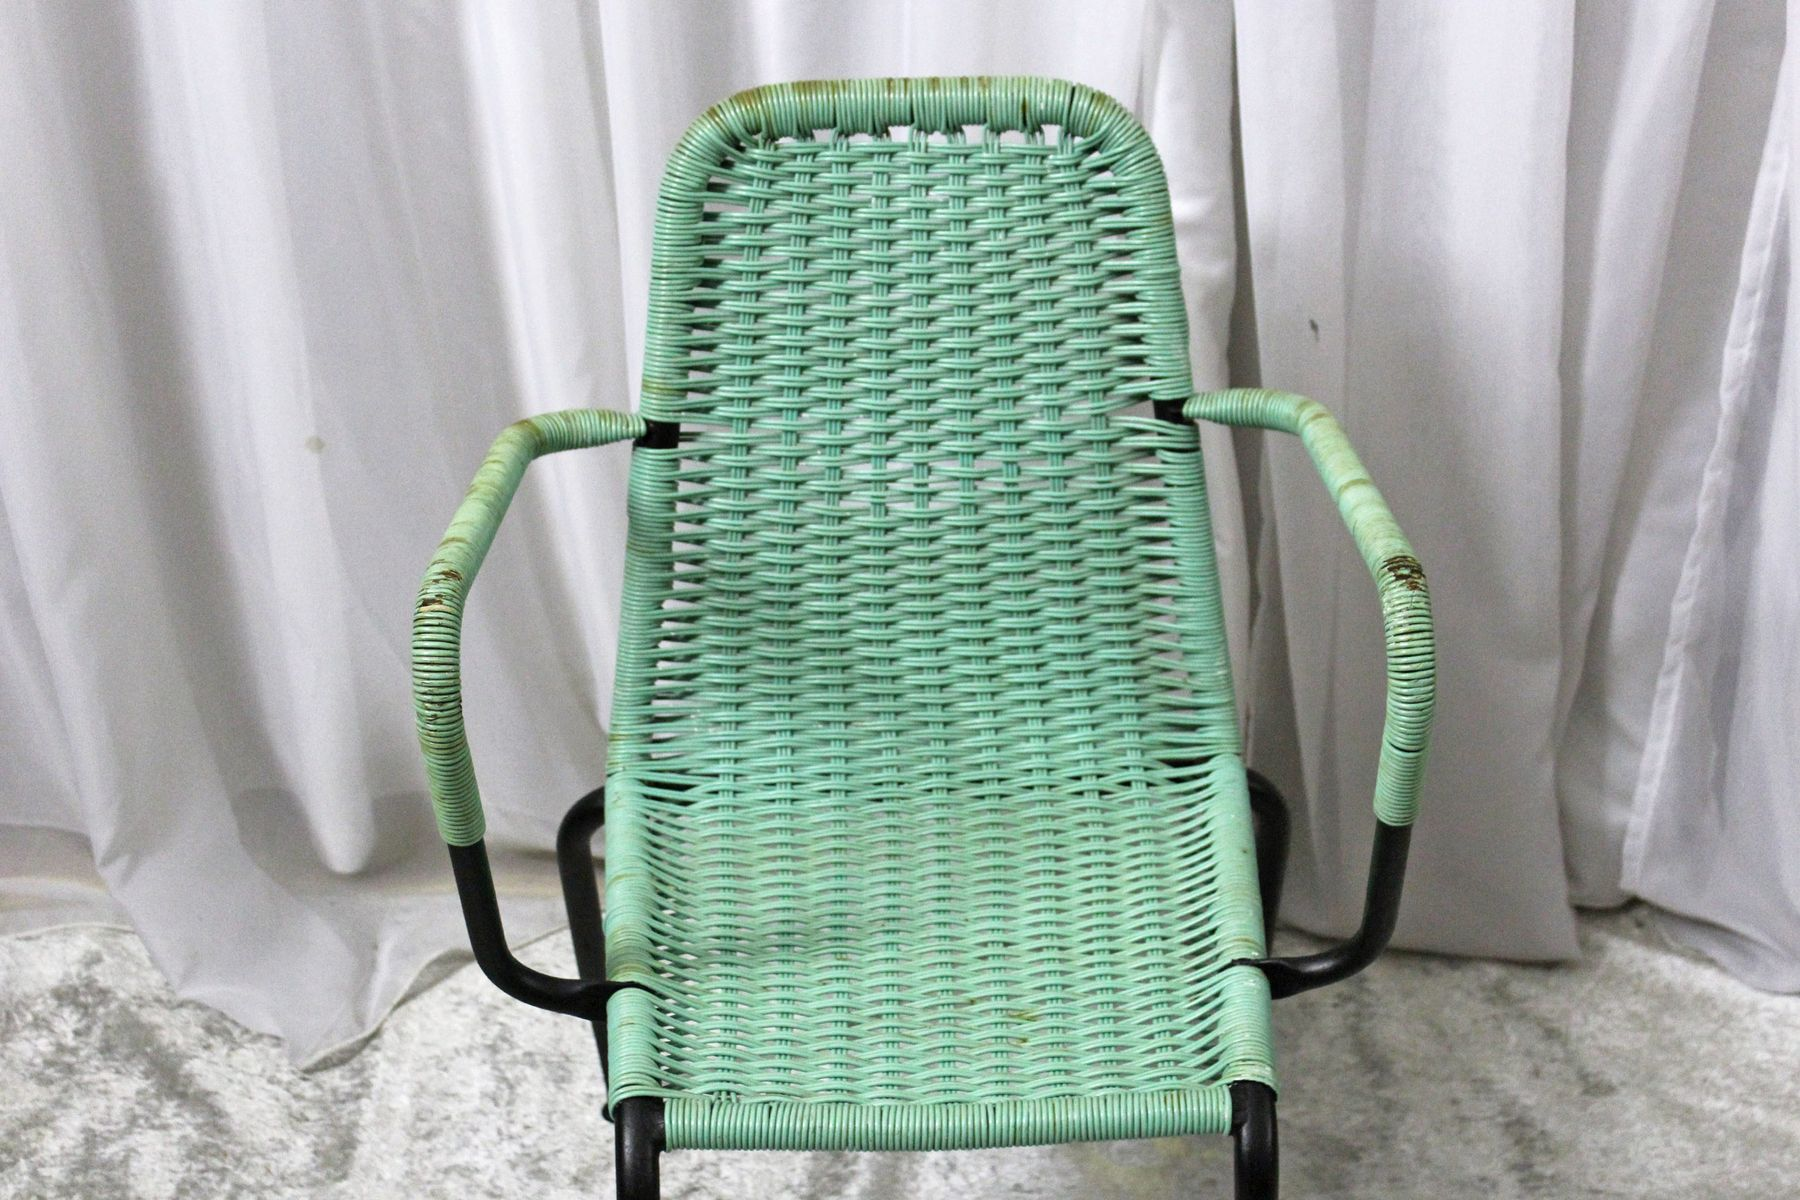 woven plastic garden chairs leather zero gravity 1950s set of 4 for sale at pamono 12 381 00 price per